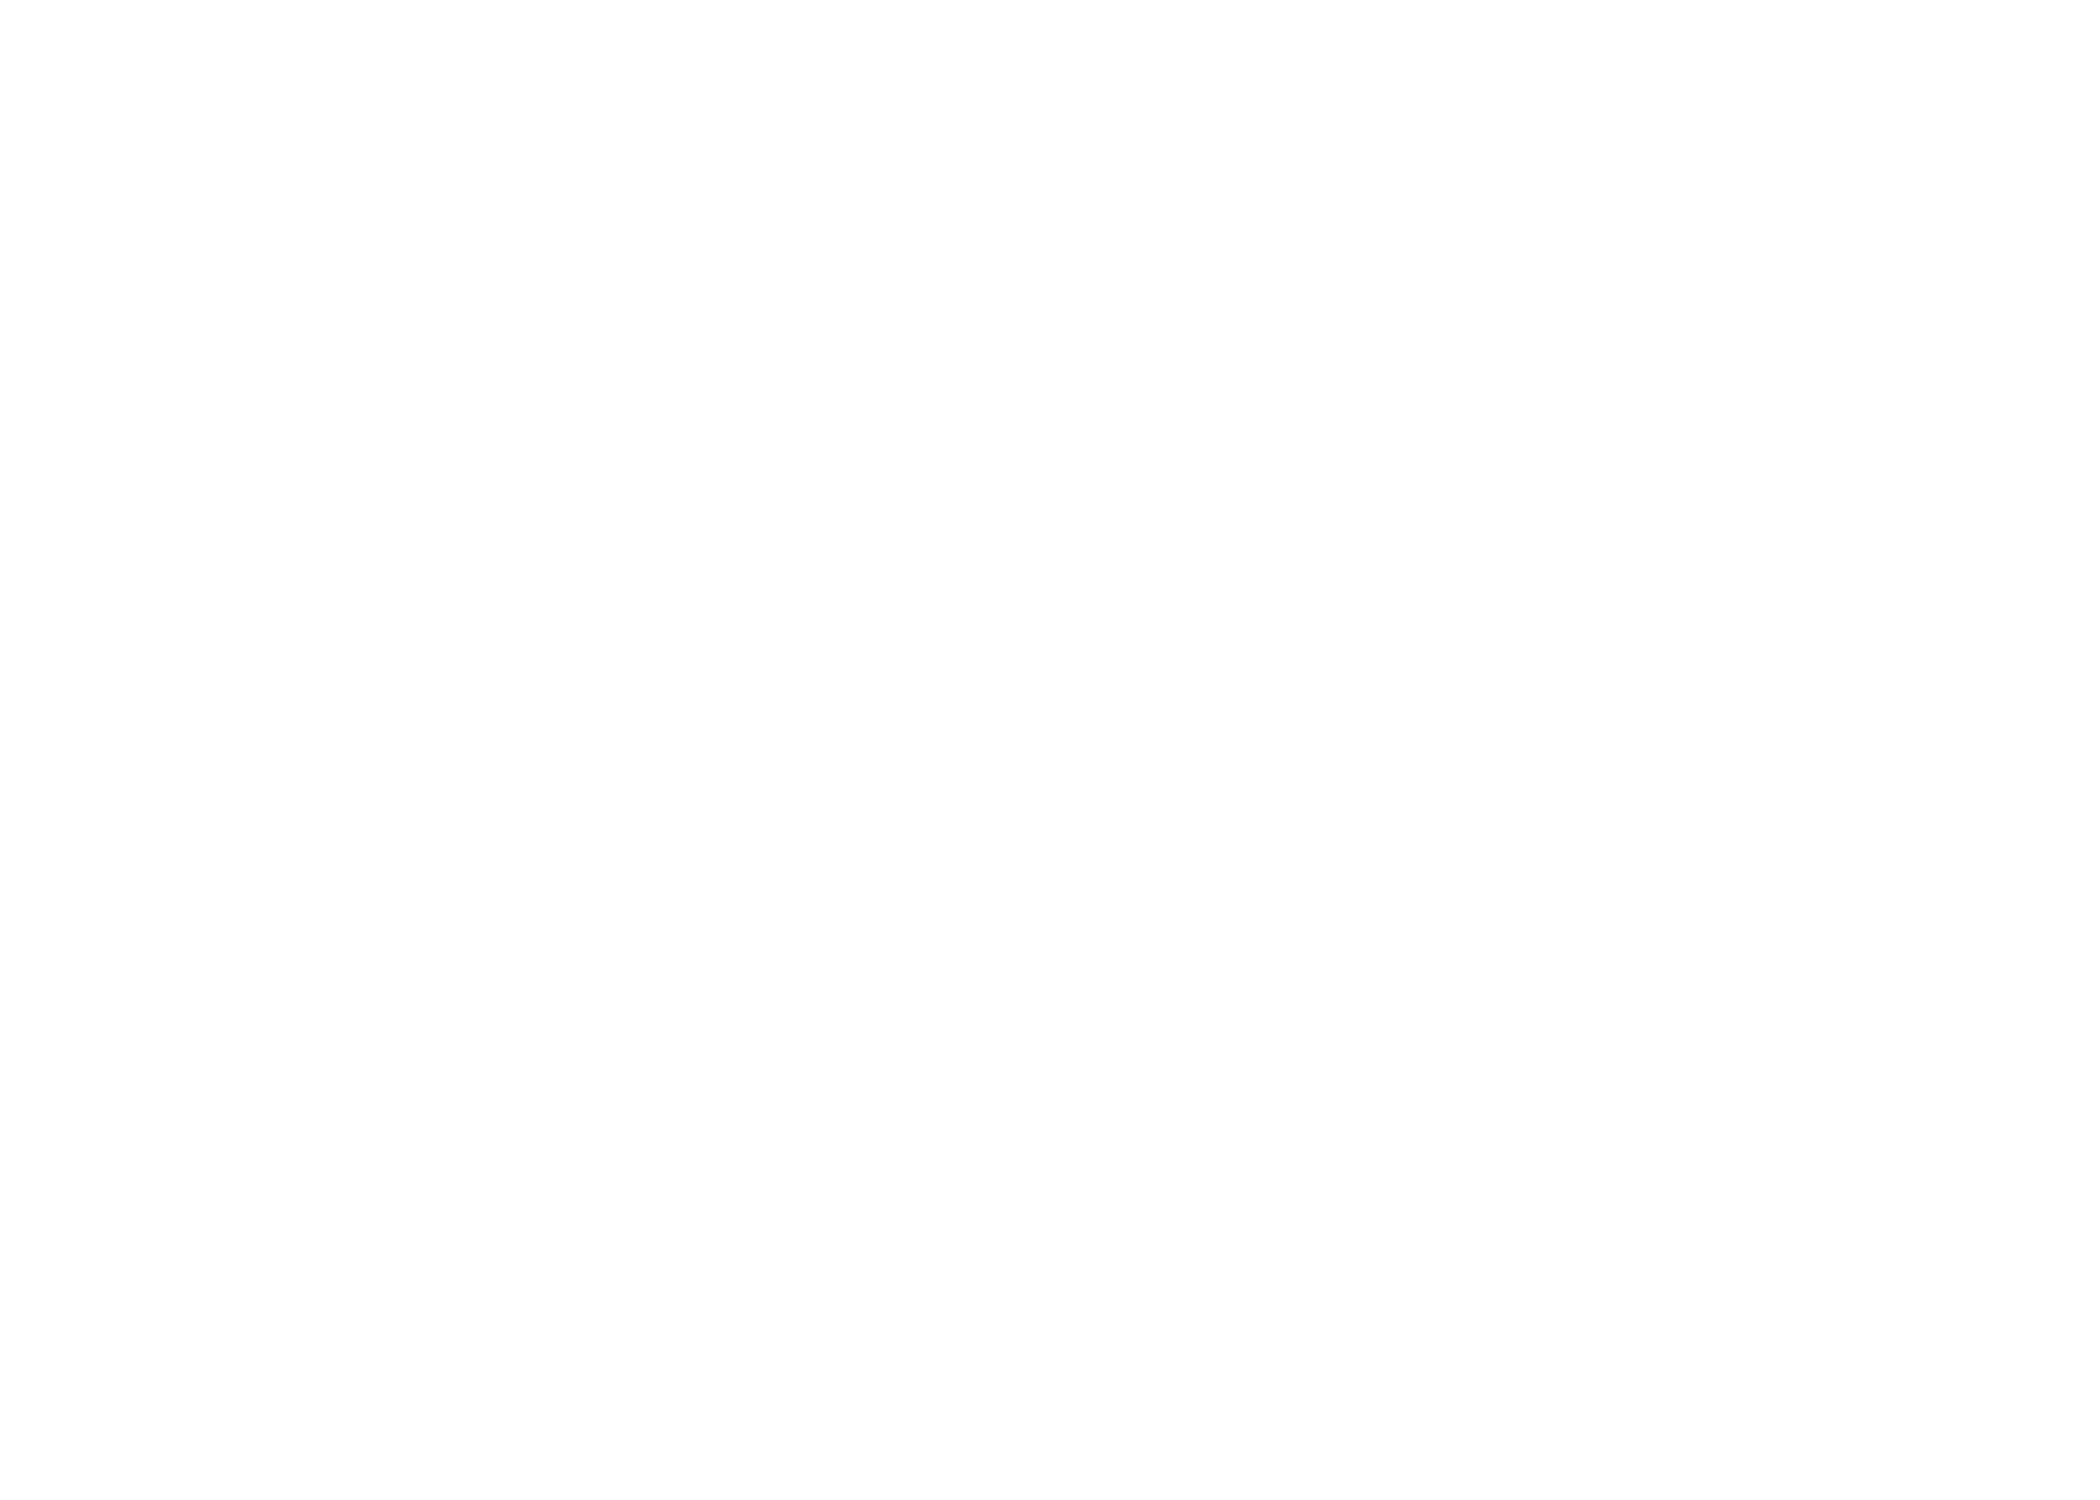 Wilder Photography Co.